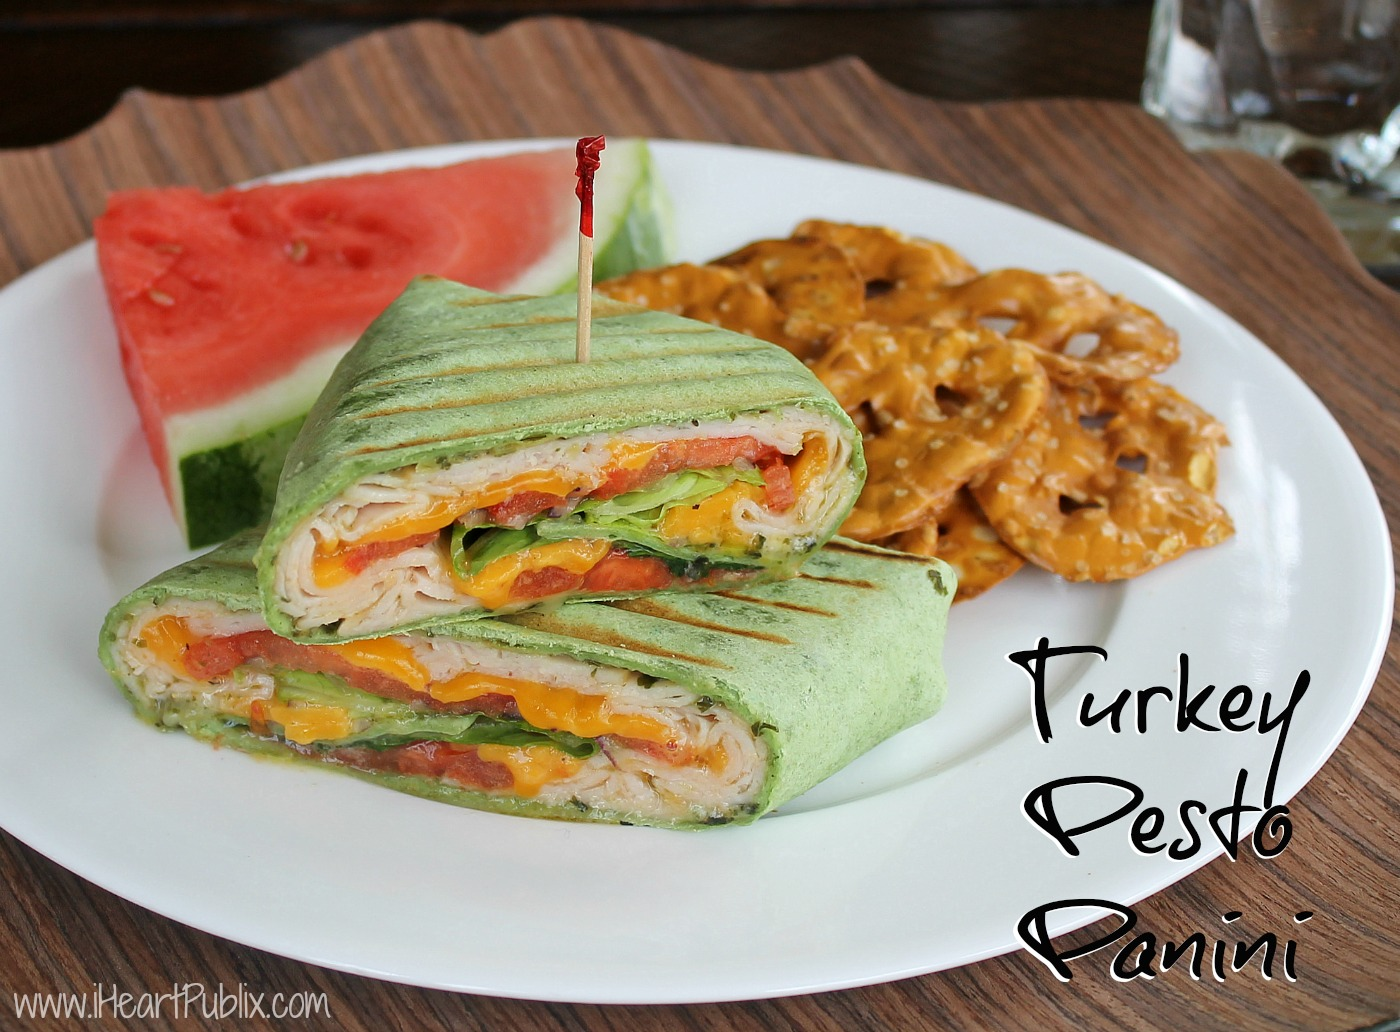 Turkey Pesto Panini copy